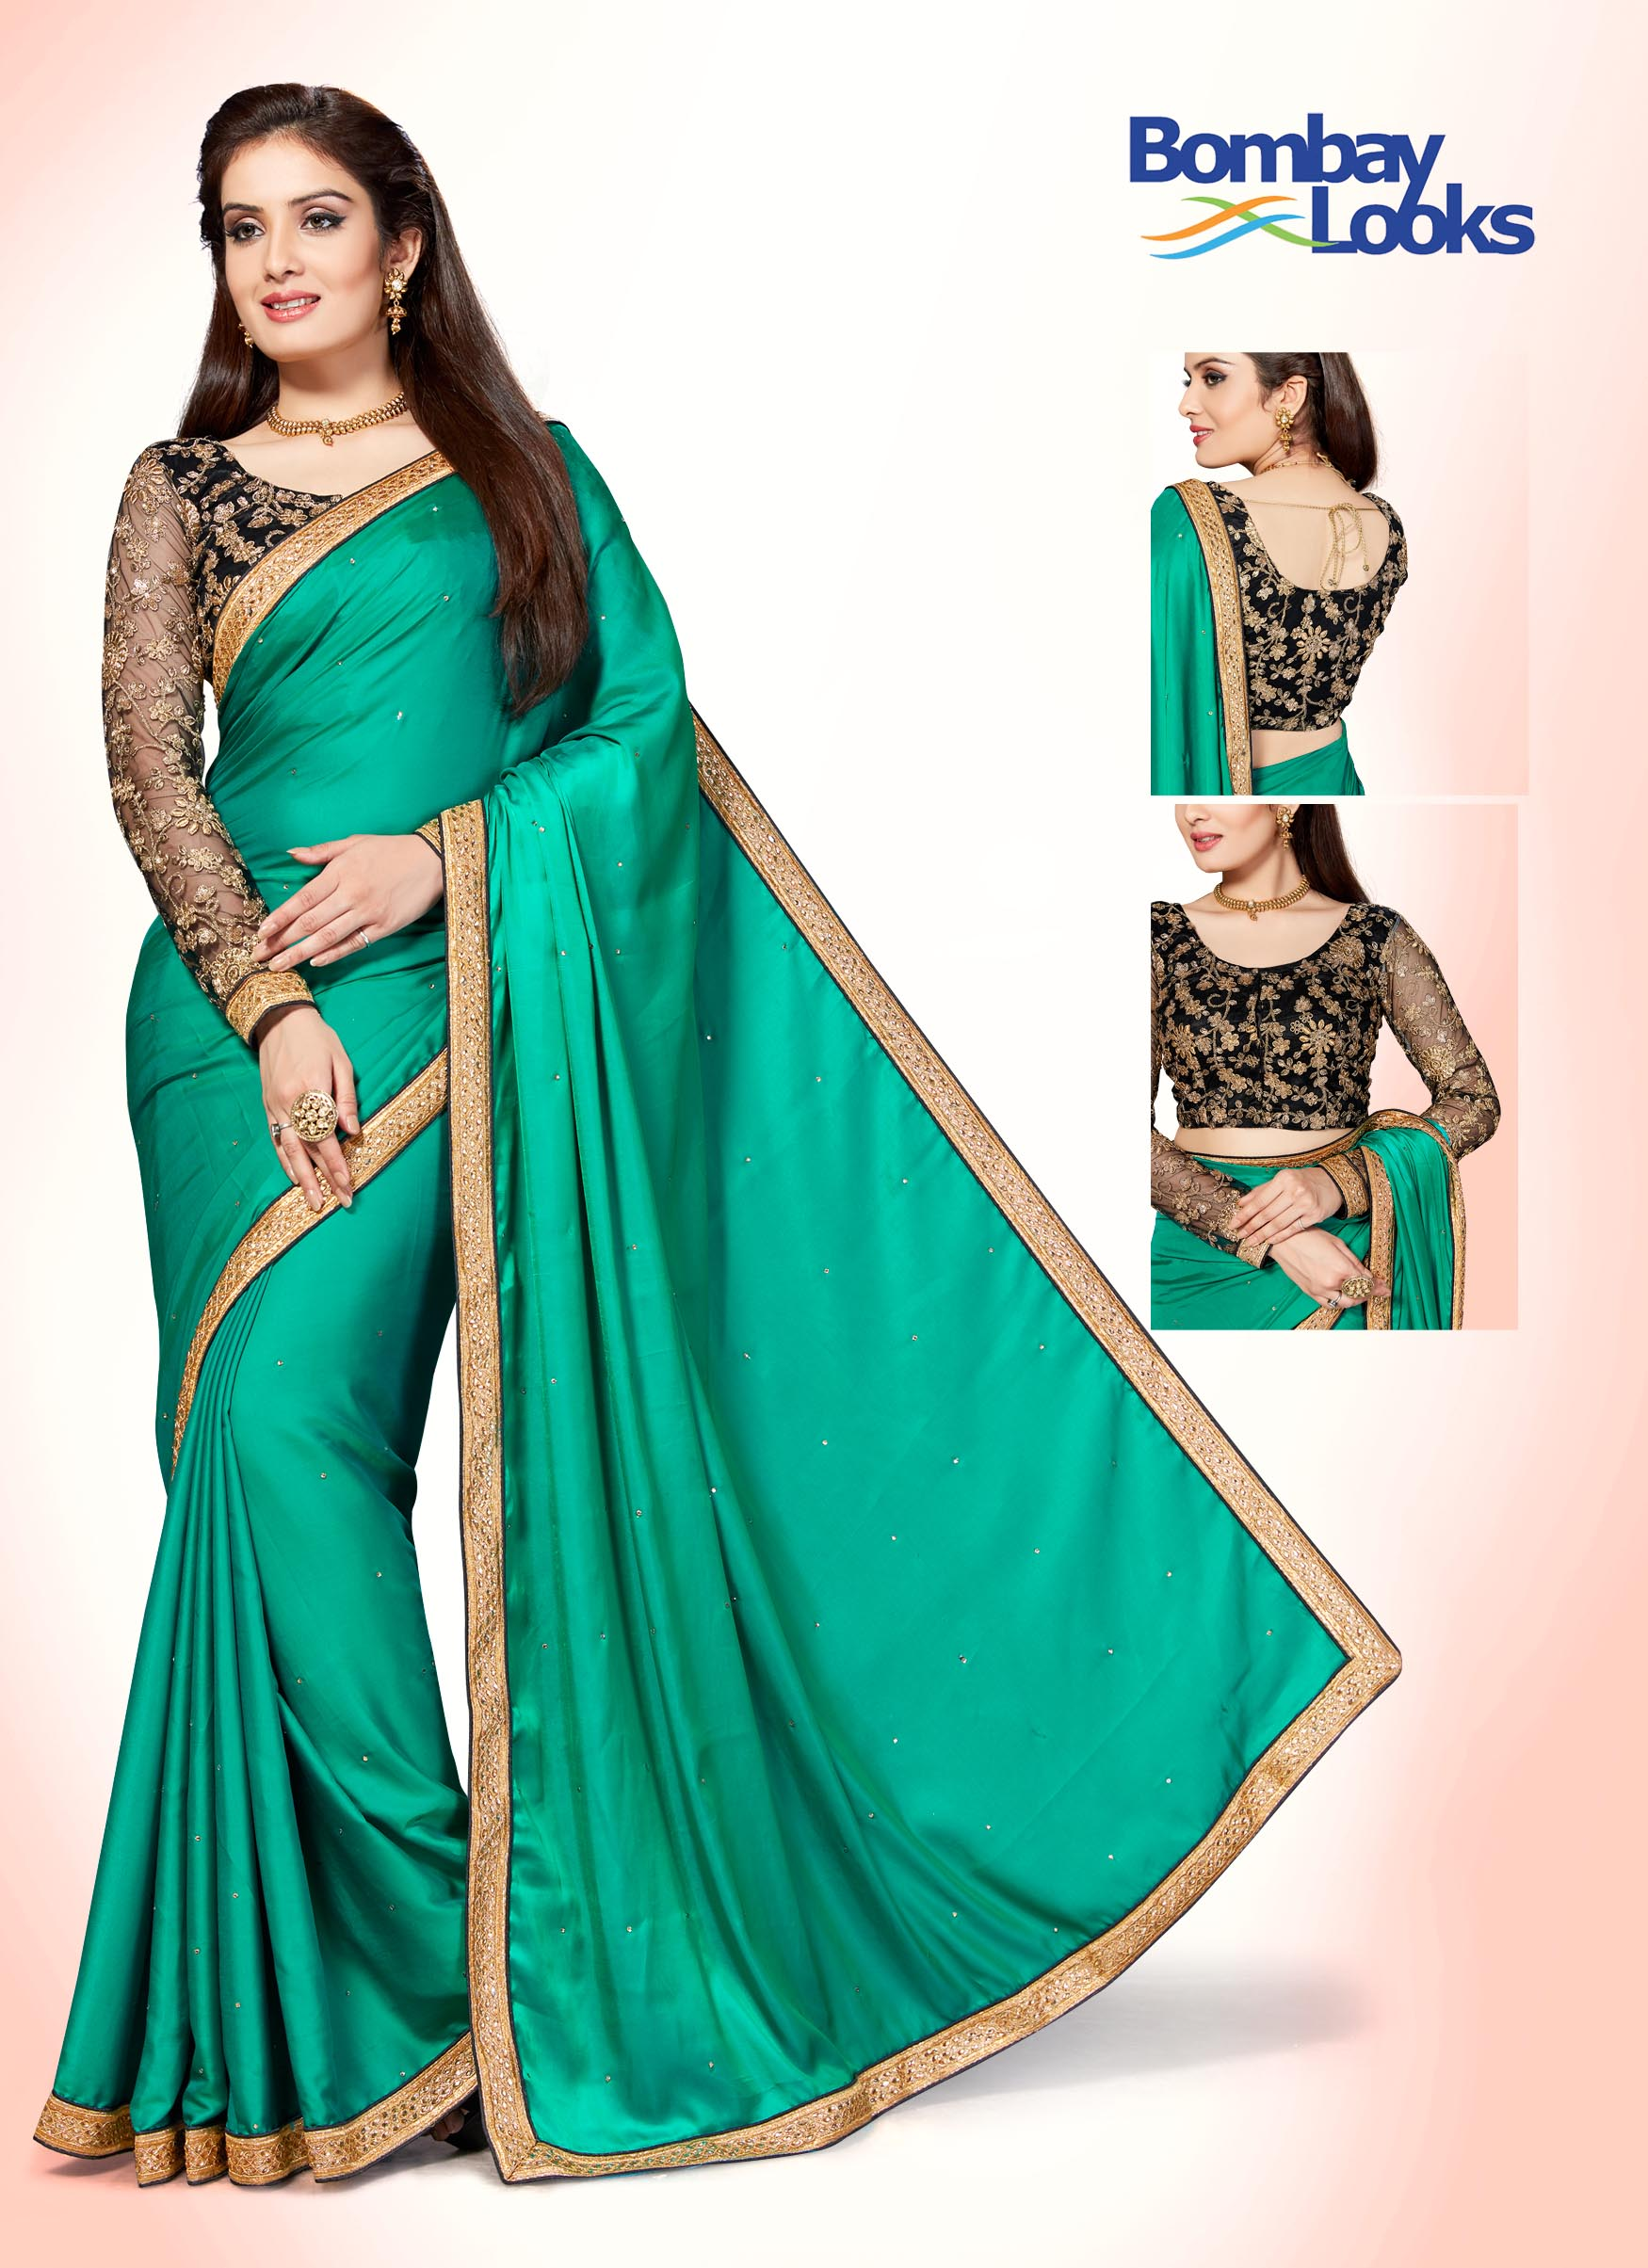 Aqua green satin silk saree with contrasting black blouse